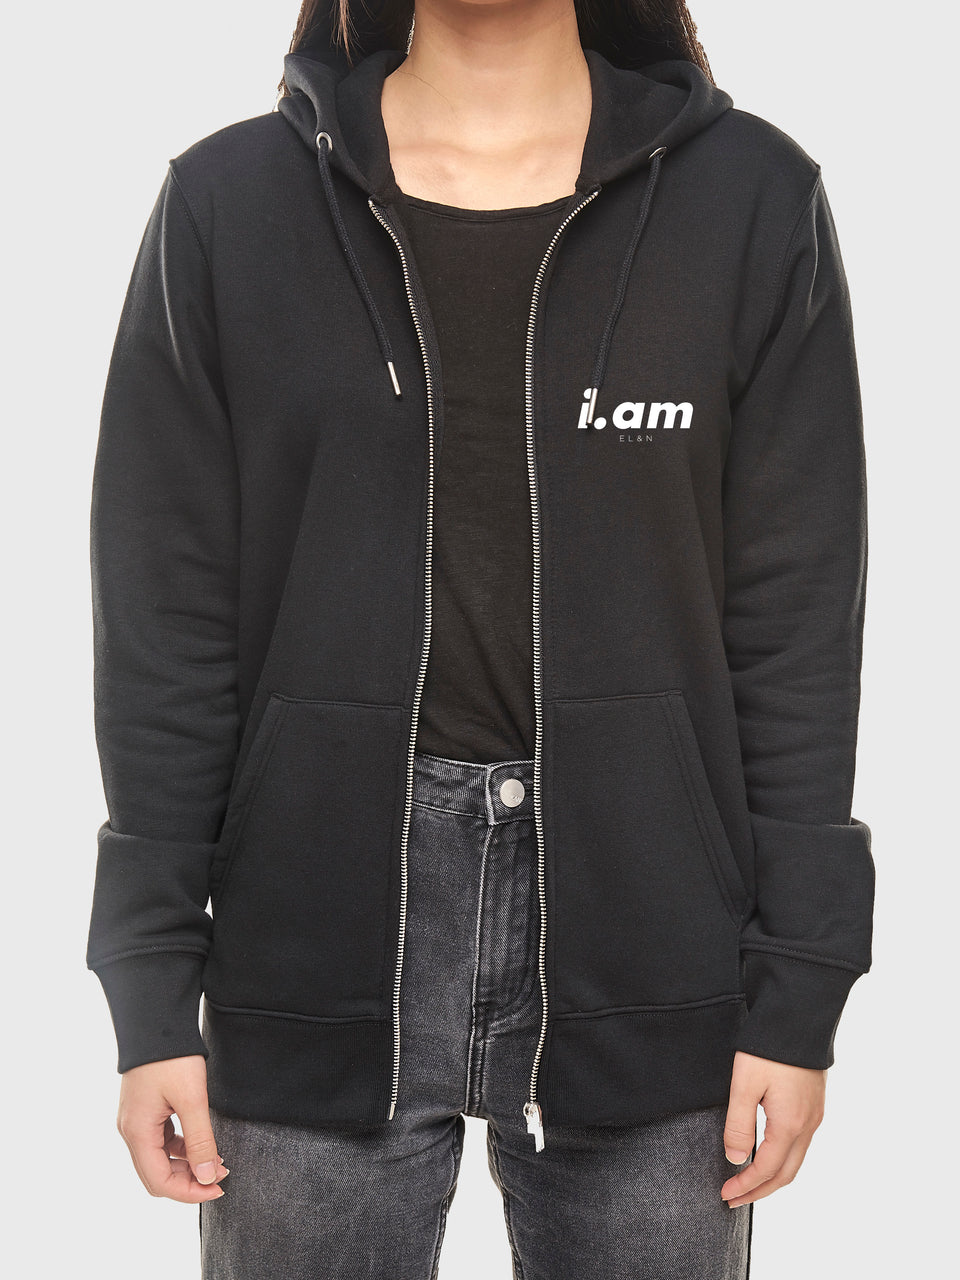 Not a copy - Black - Unisex zip up hoodie